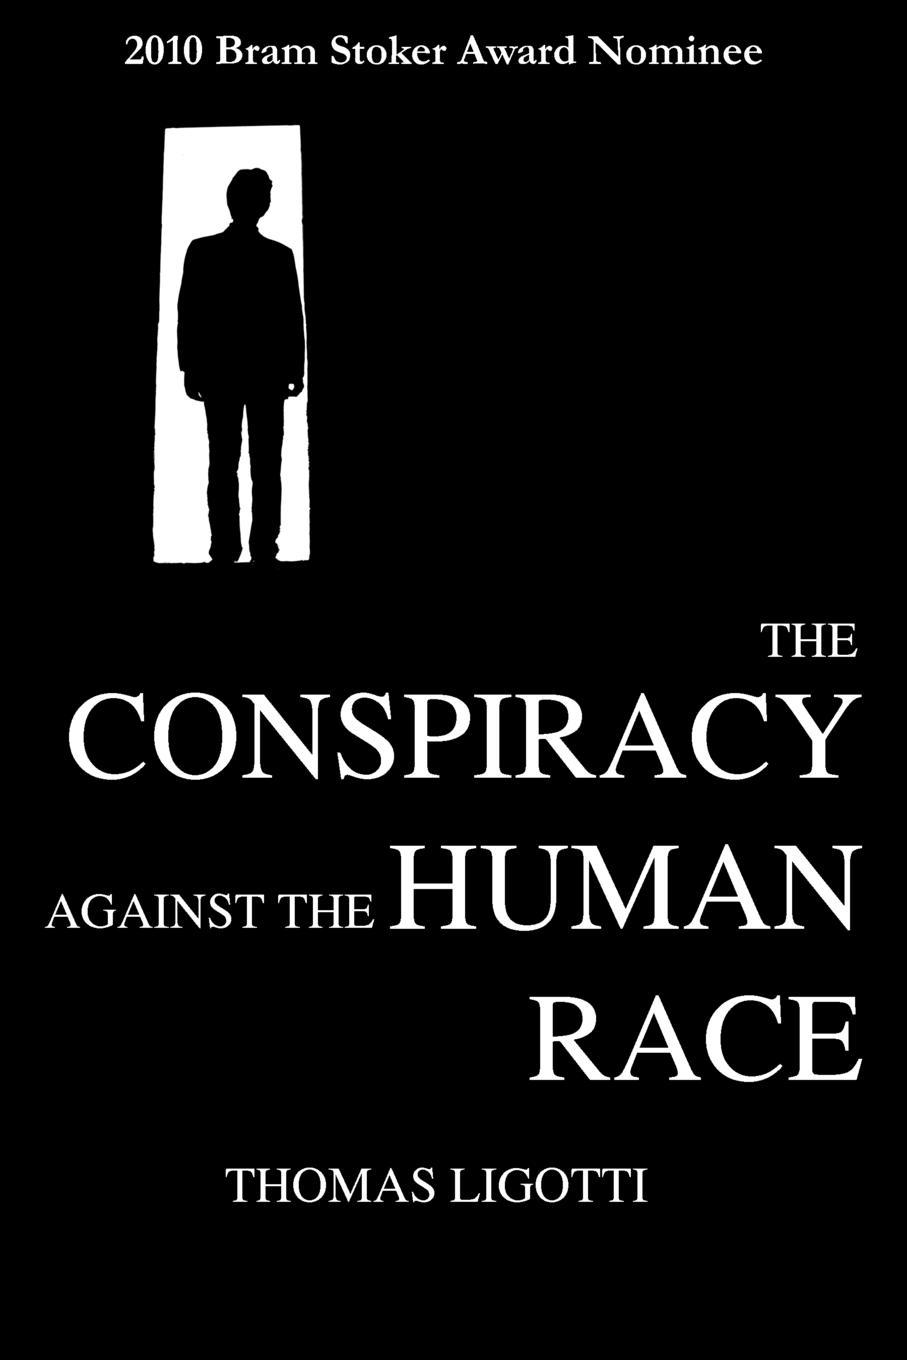 The-Conspiracy-against-the-Human-Race-Ligotti-Thomas-EB9781614980117